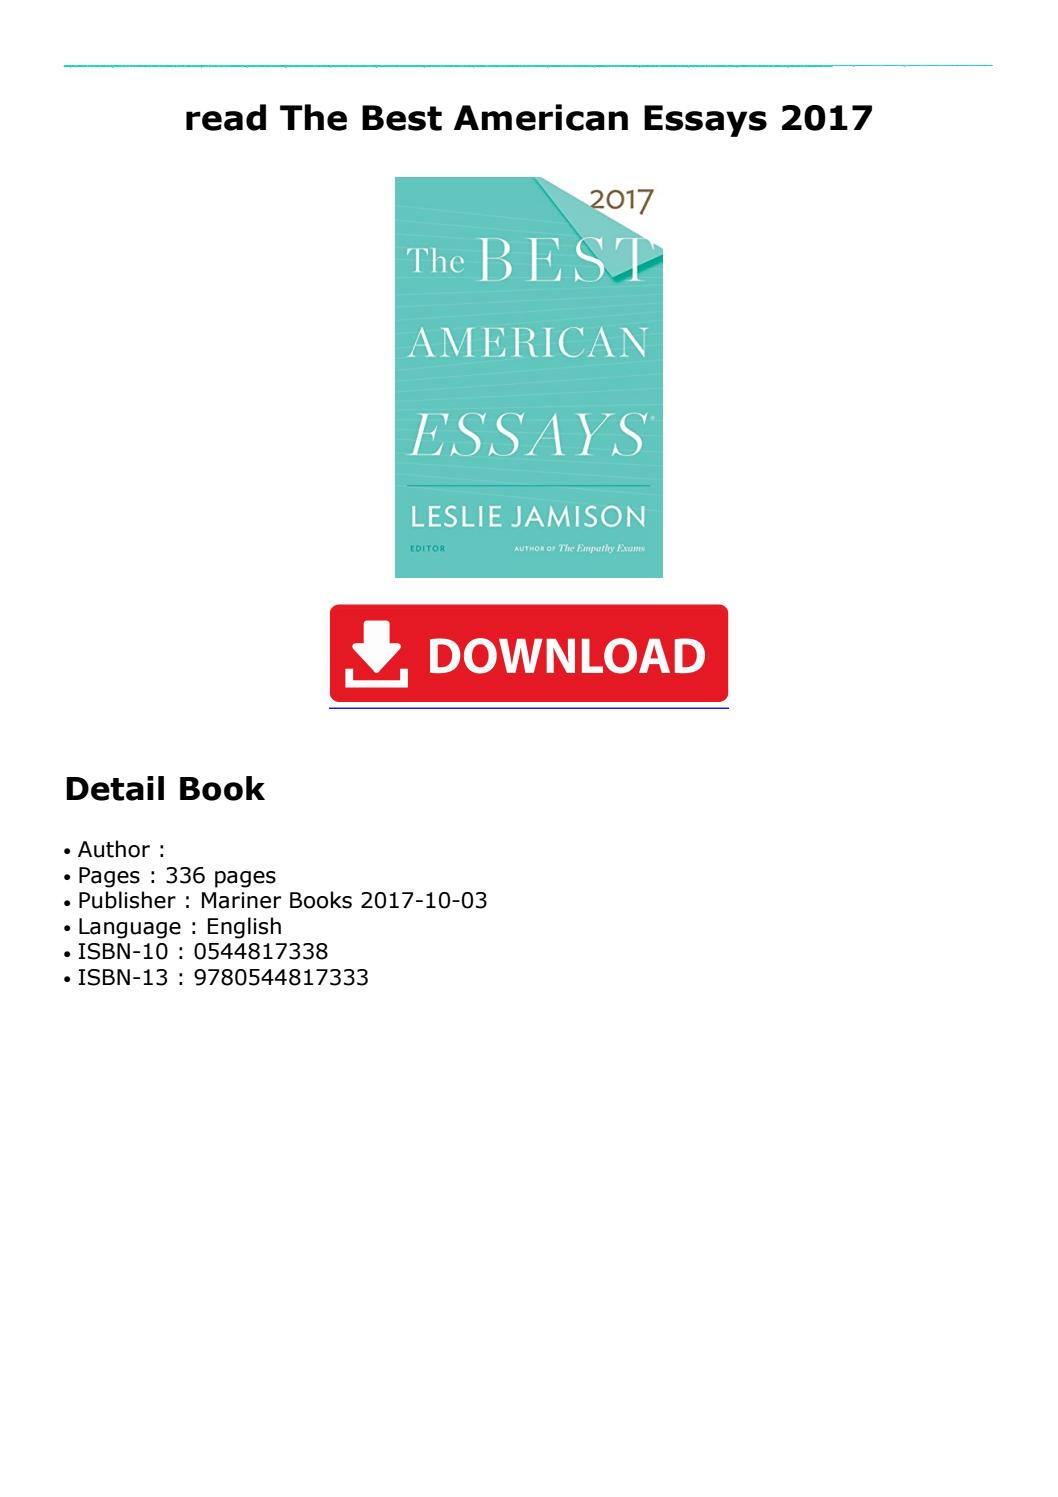 005 Best American Essays Essay Example Page 1 Astounding 2017 Submissions Pdf Free Download Full